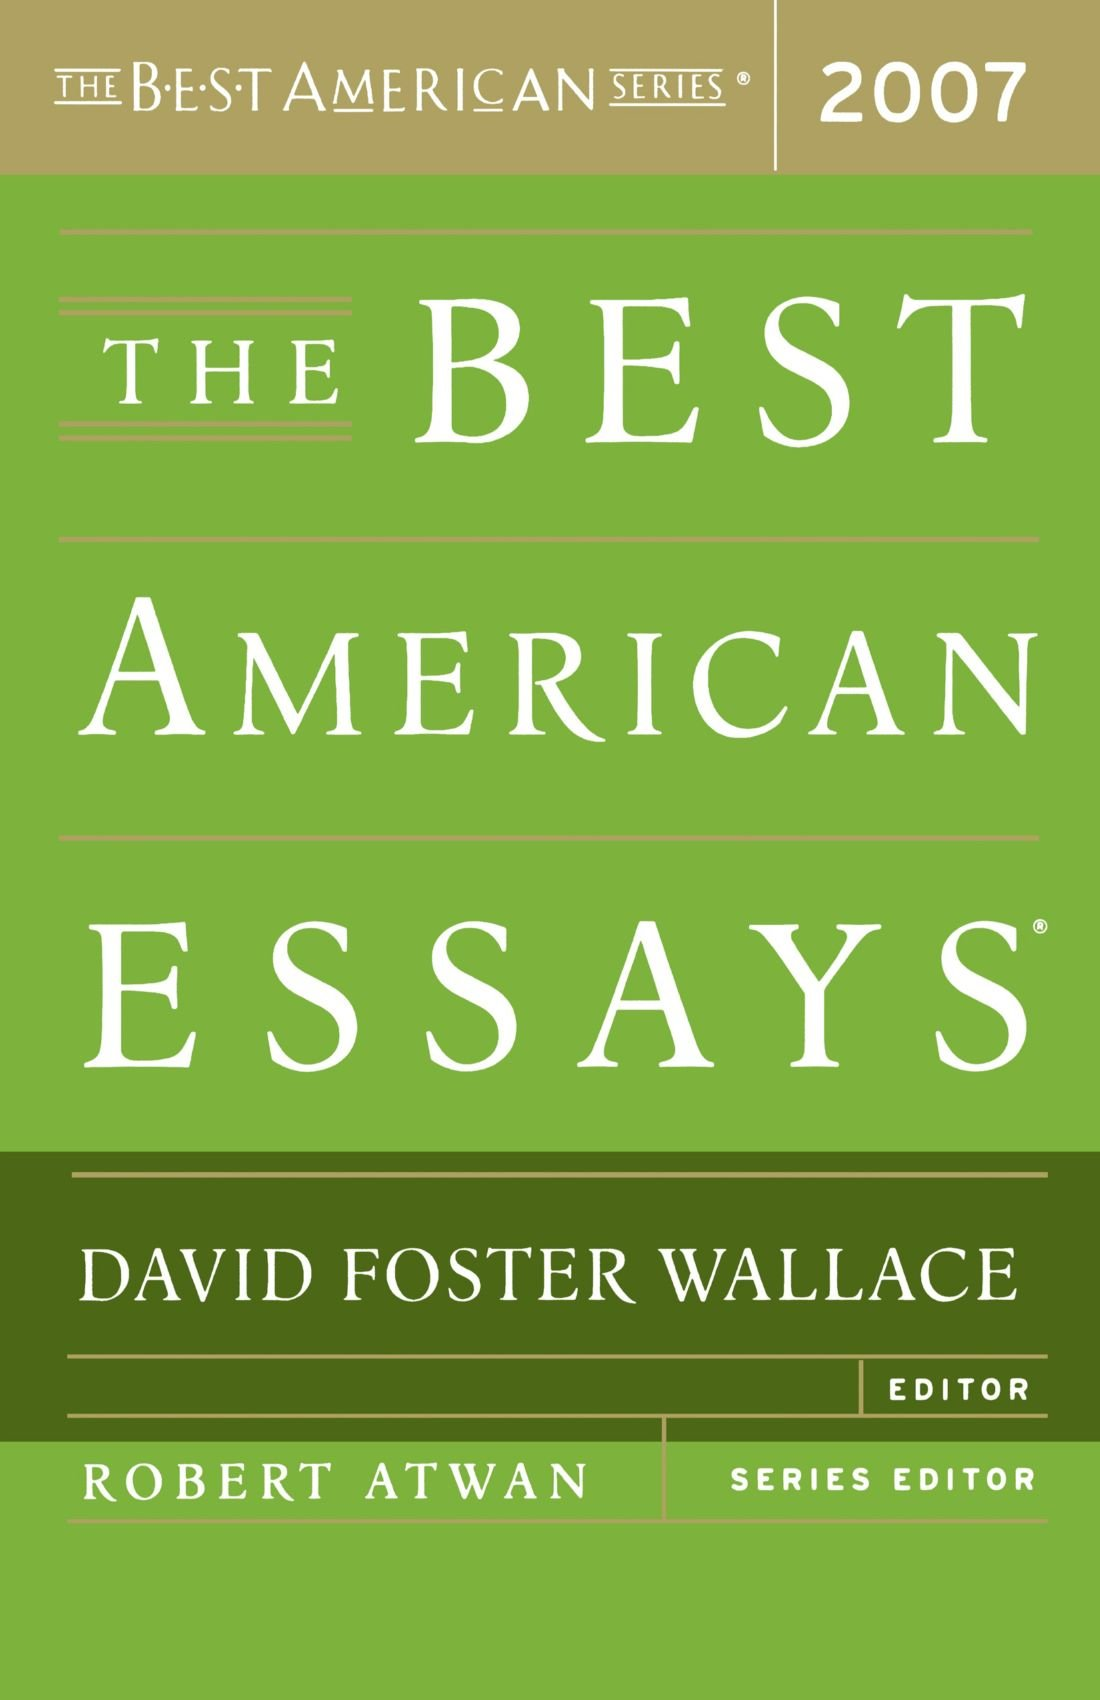 002 Essay Example David Foster Wallace Singular On Television Consider Critical Essays This Is Water Full